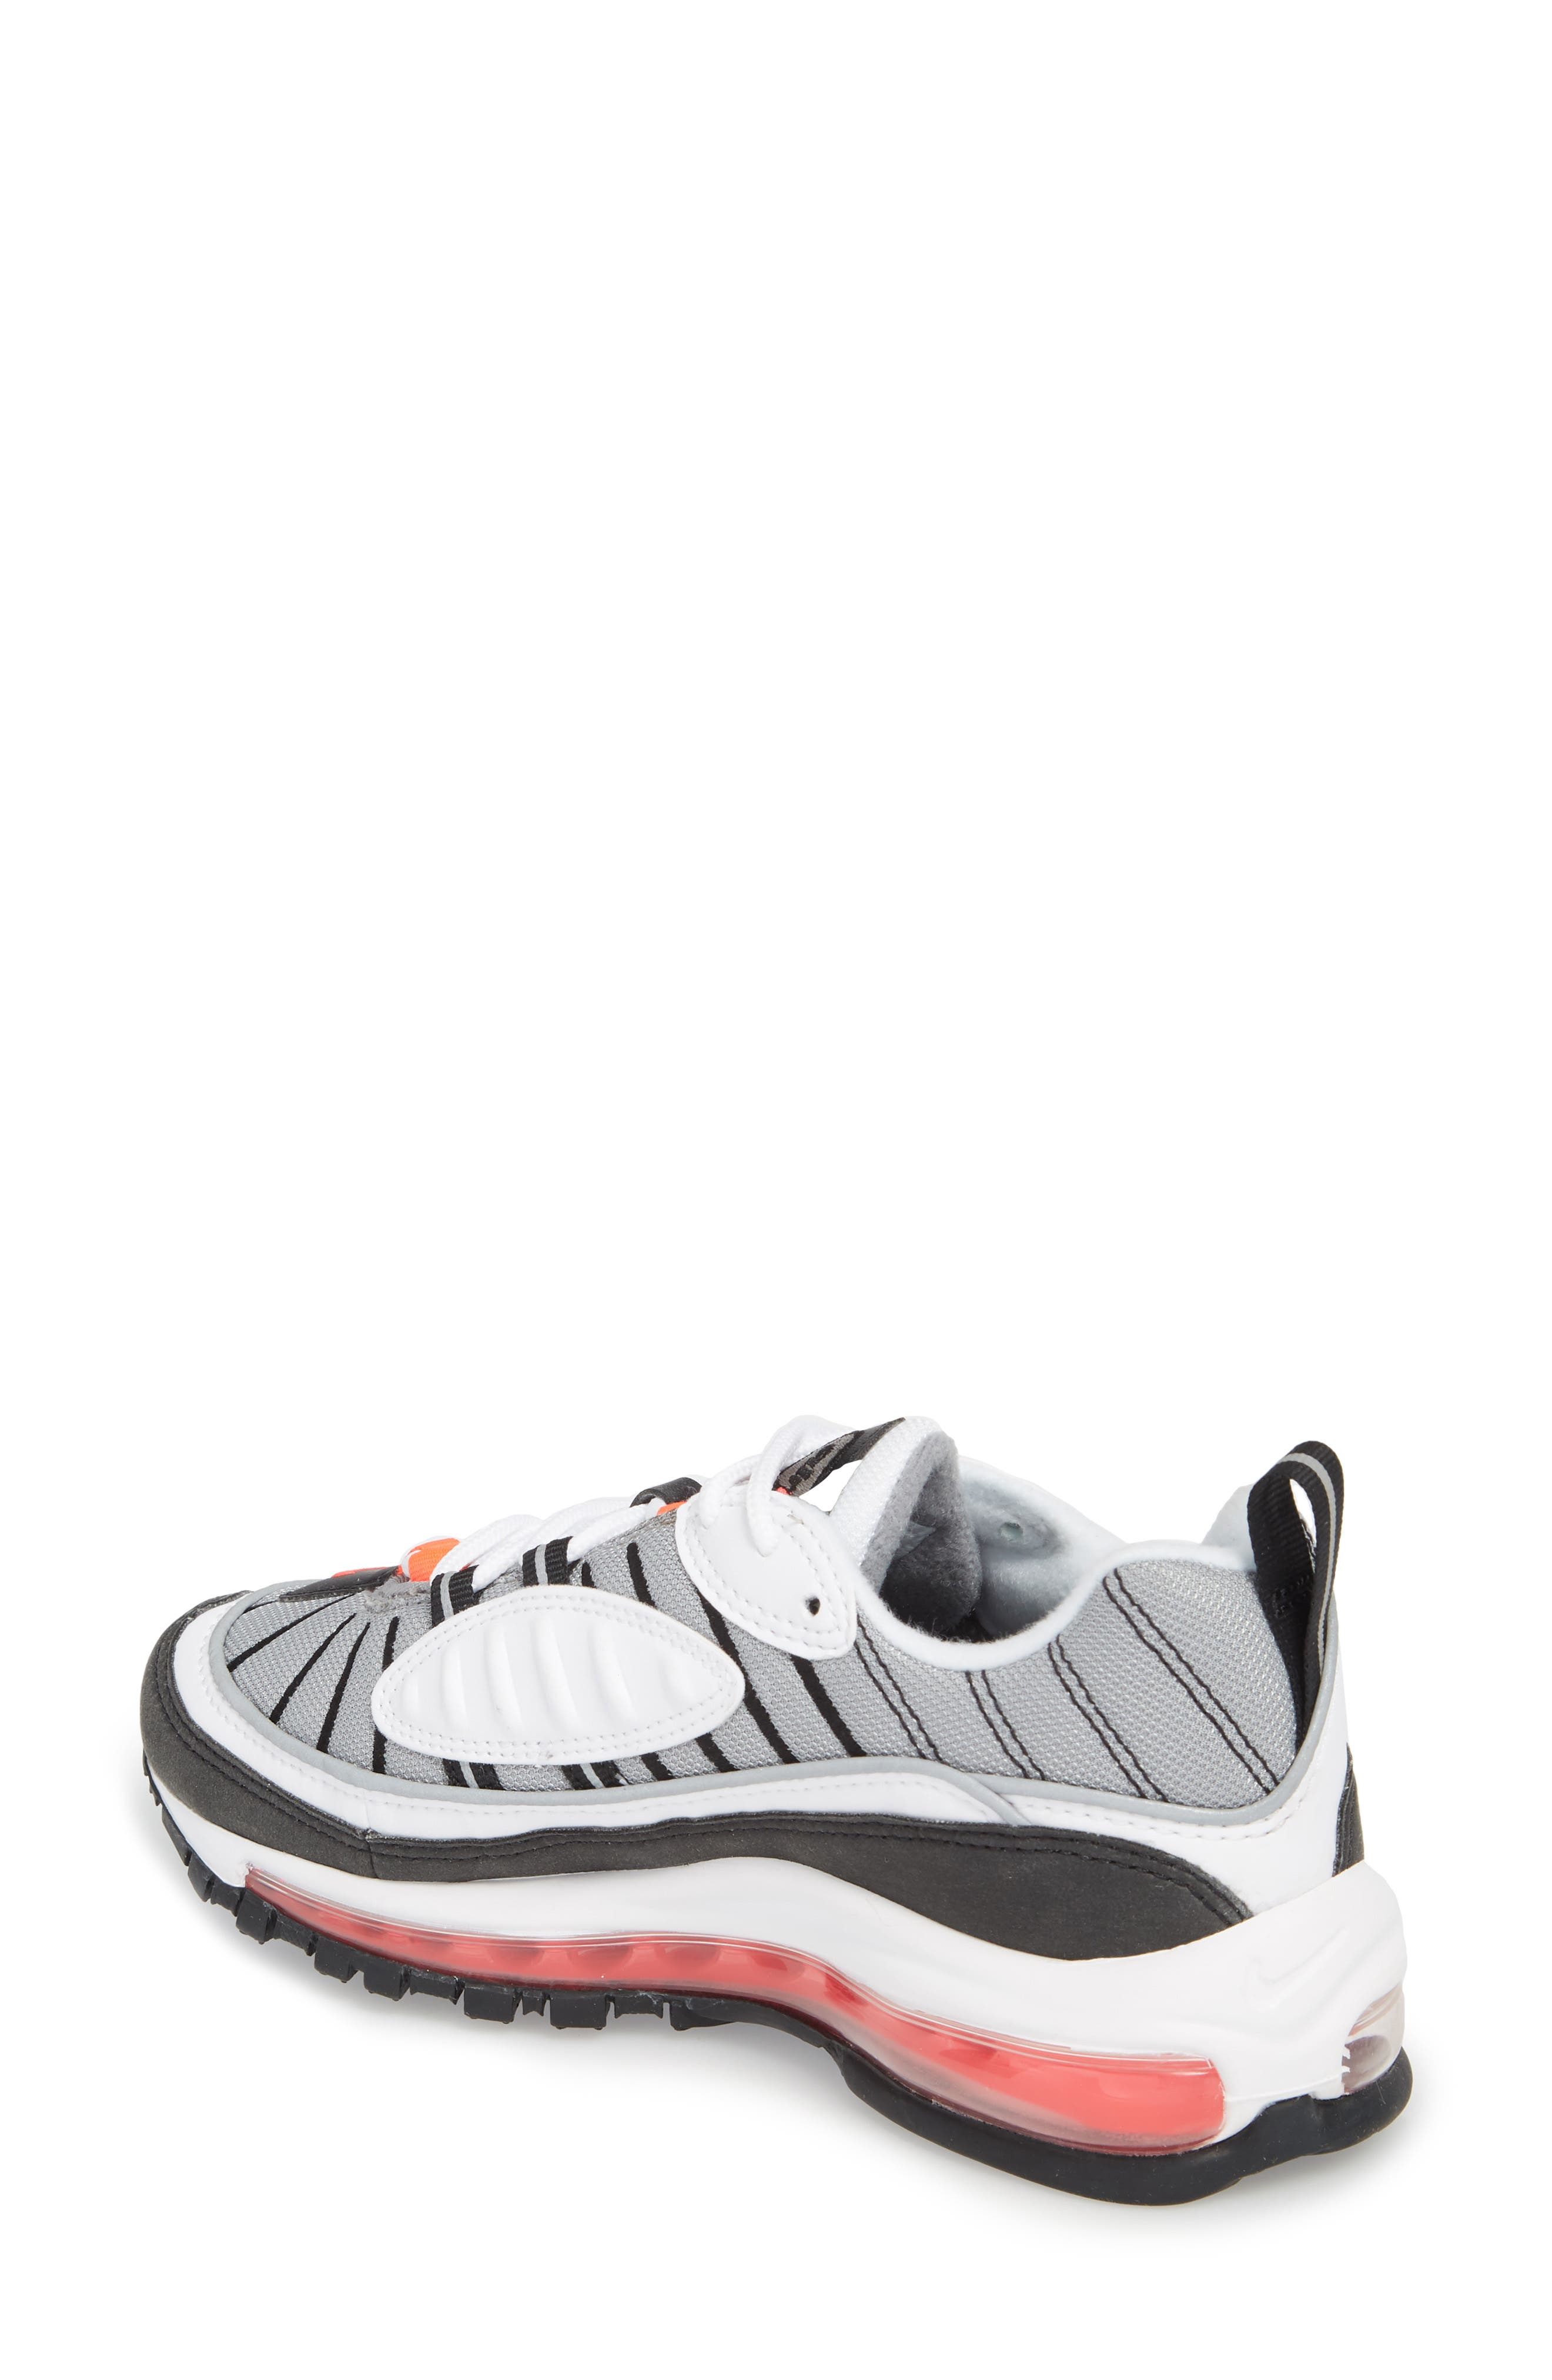 Air Max 98 Running Shoe,                             Alternate thumbnail 2, color,                             WHITE/ RED/ DUST/ REFLECT